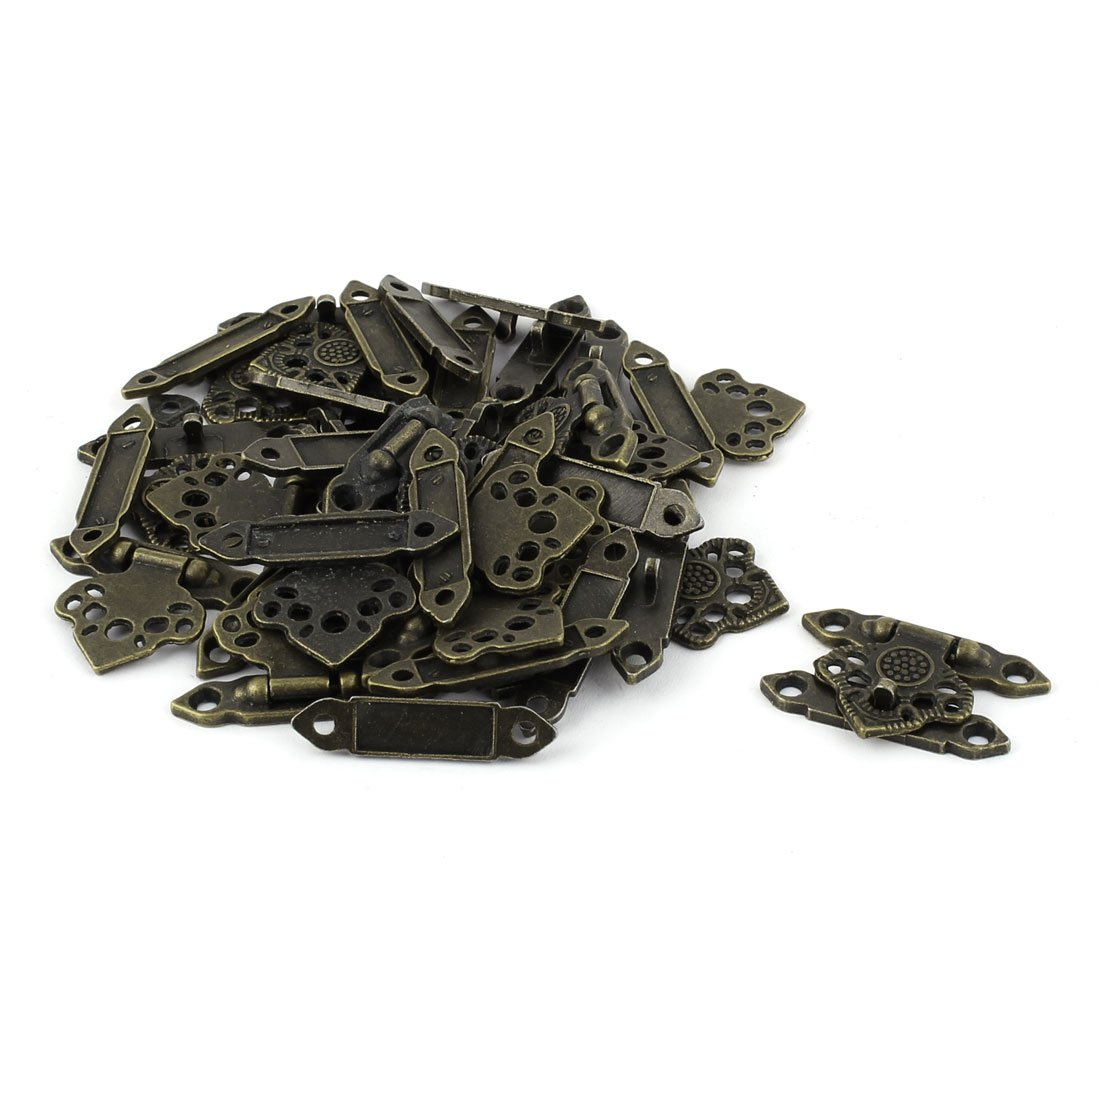 uxcell Jewelry Hollow Leaf Shape Antique Zinc Alloy Box Latch Hasp Bronze Tone 20 PCS by uxcell